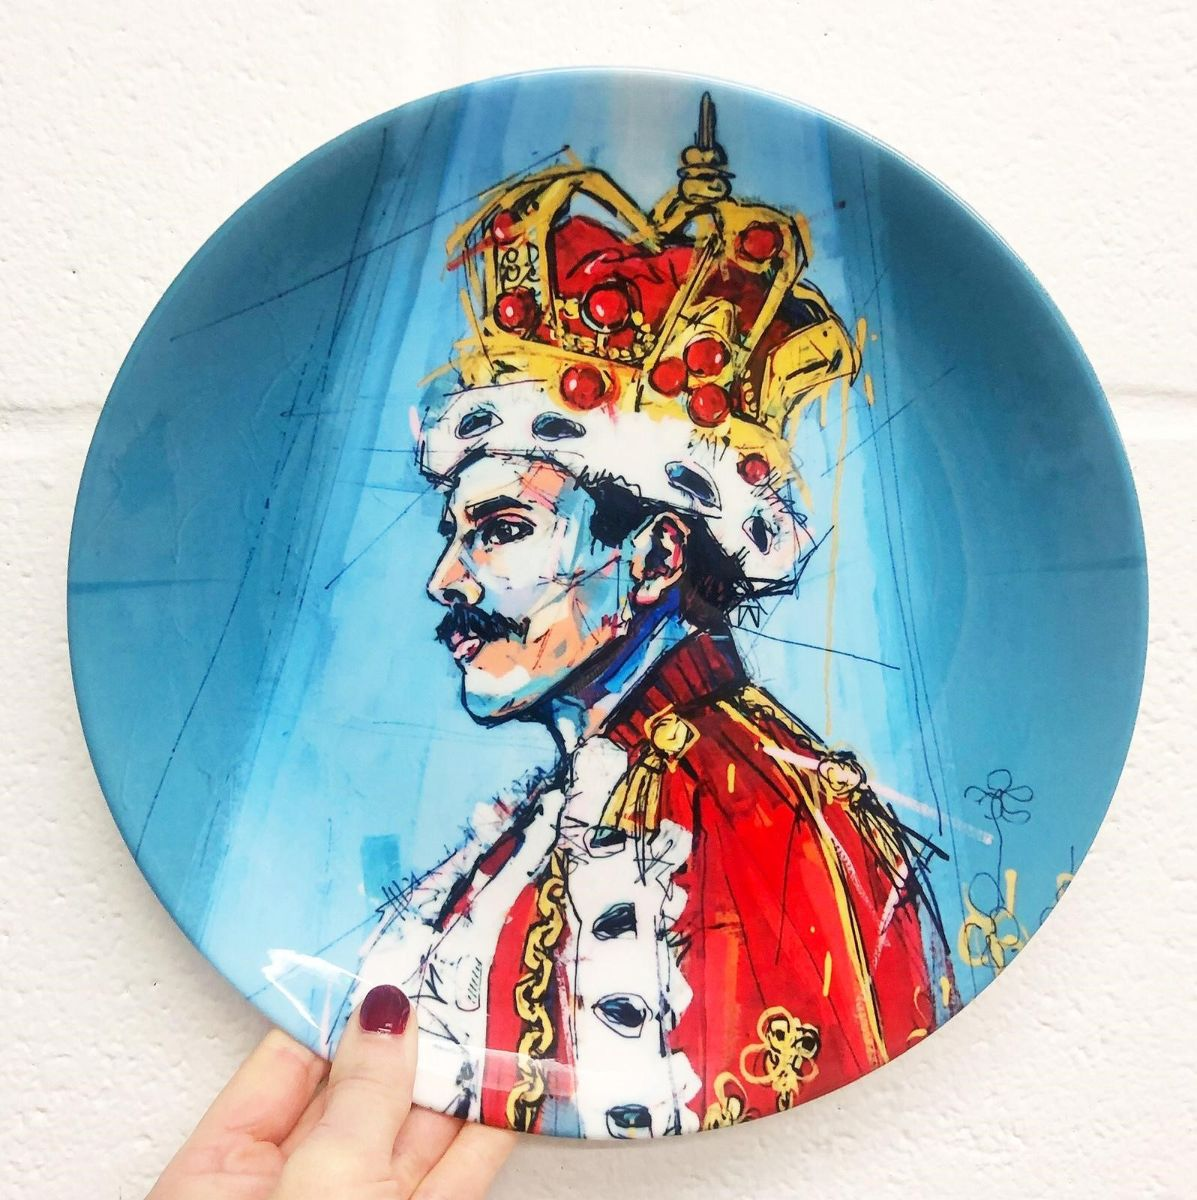 Royal Freddie - Freddie Mercury portrait on dinner plate